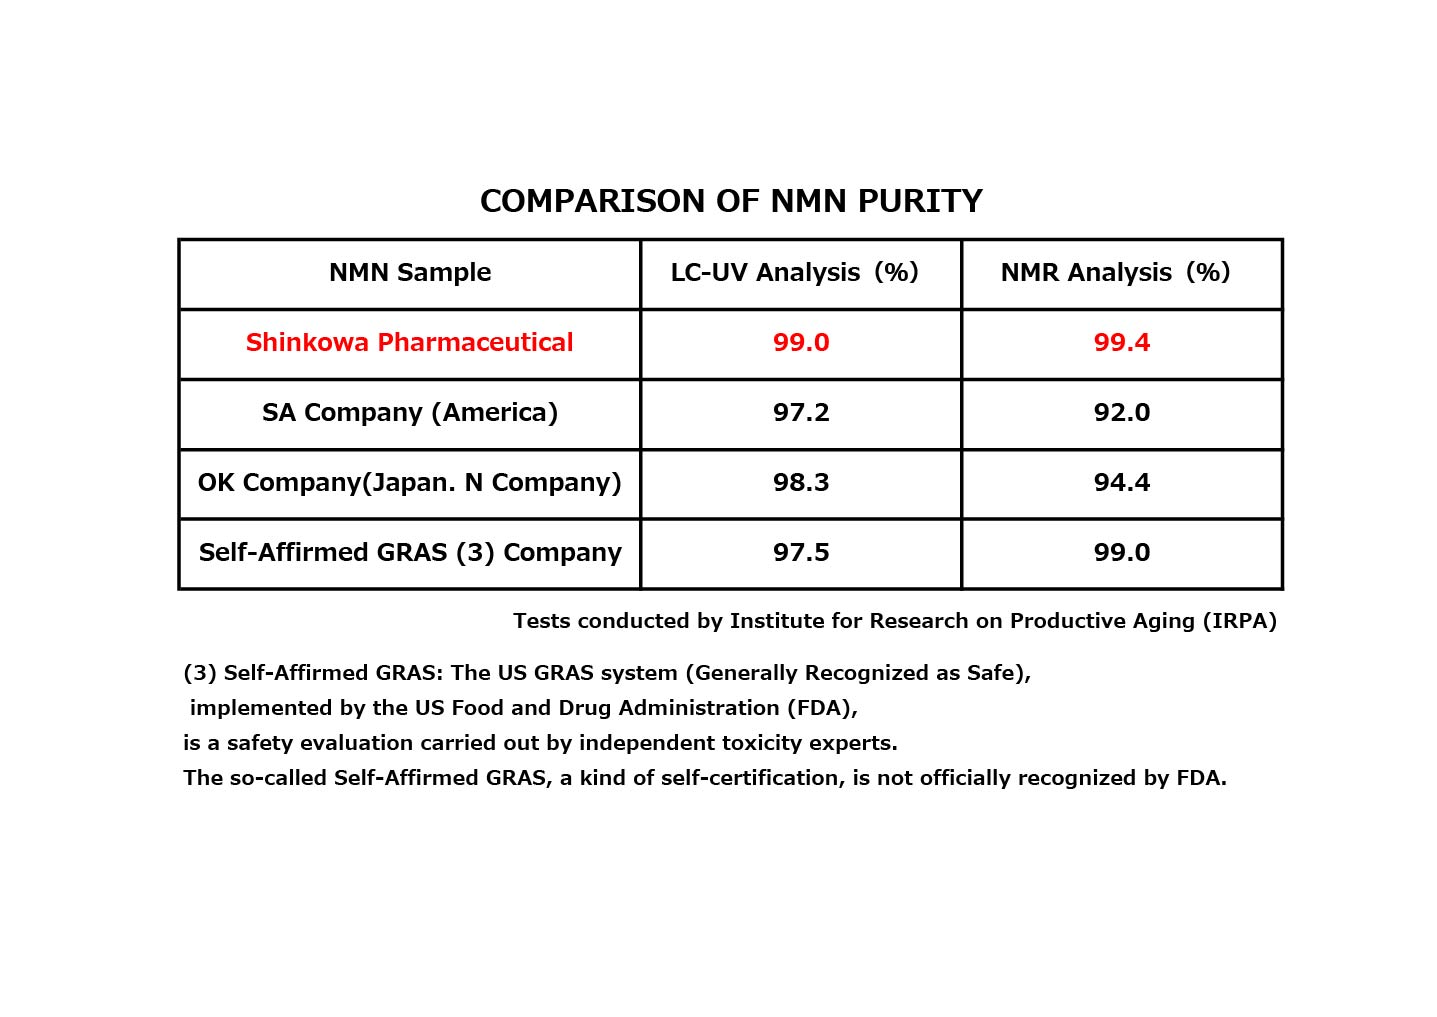 NMN Purity comparison table